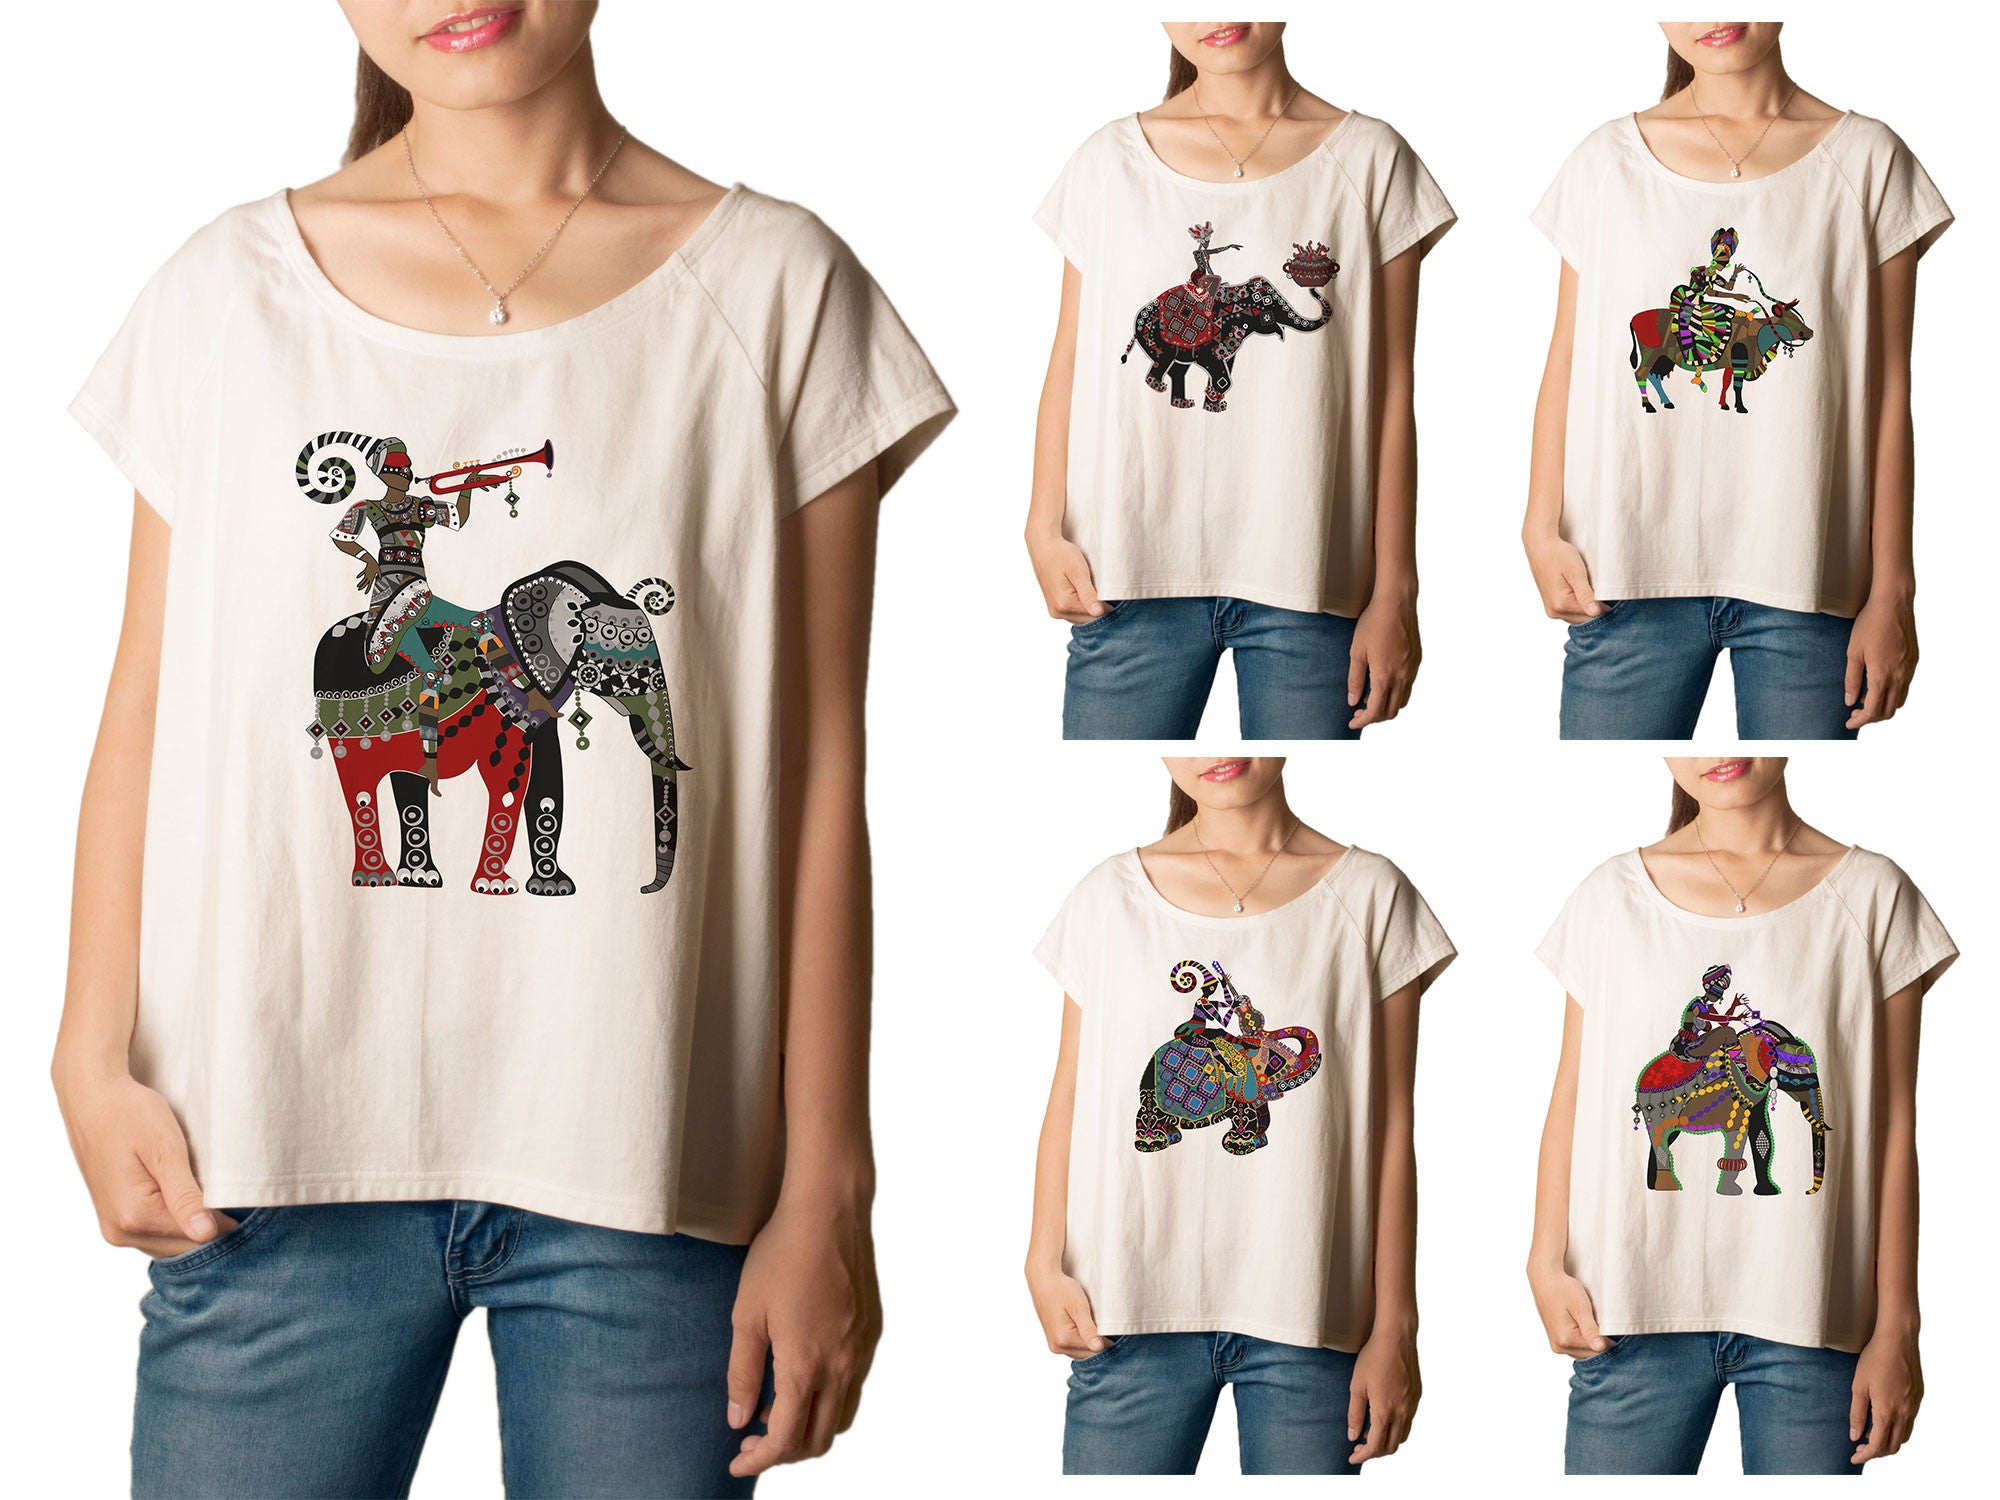 Women's Africa Culture Printed cotton T-shirt  Tee WTS_01